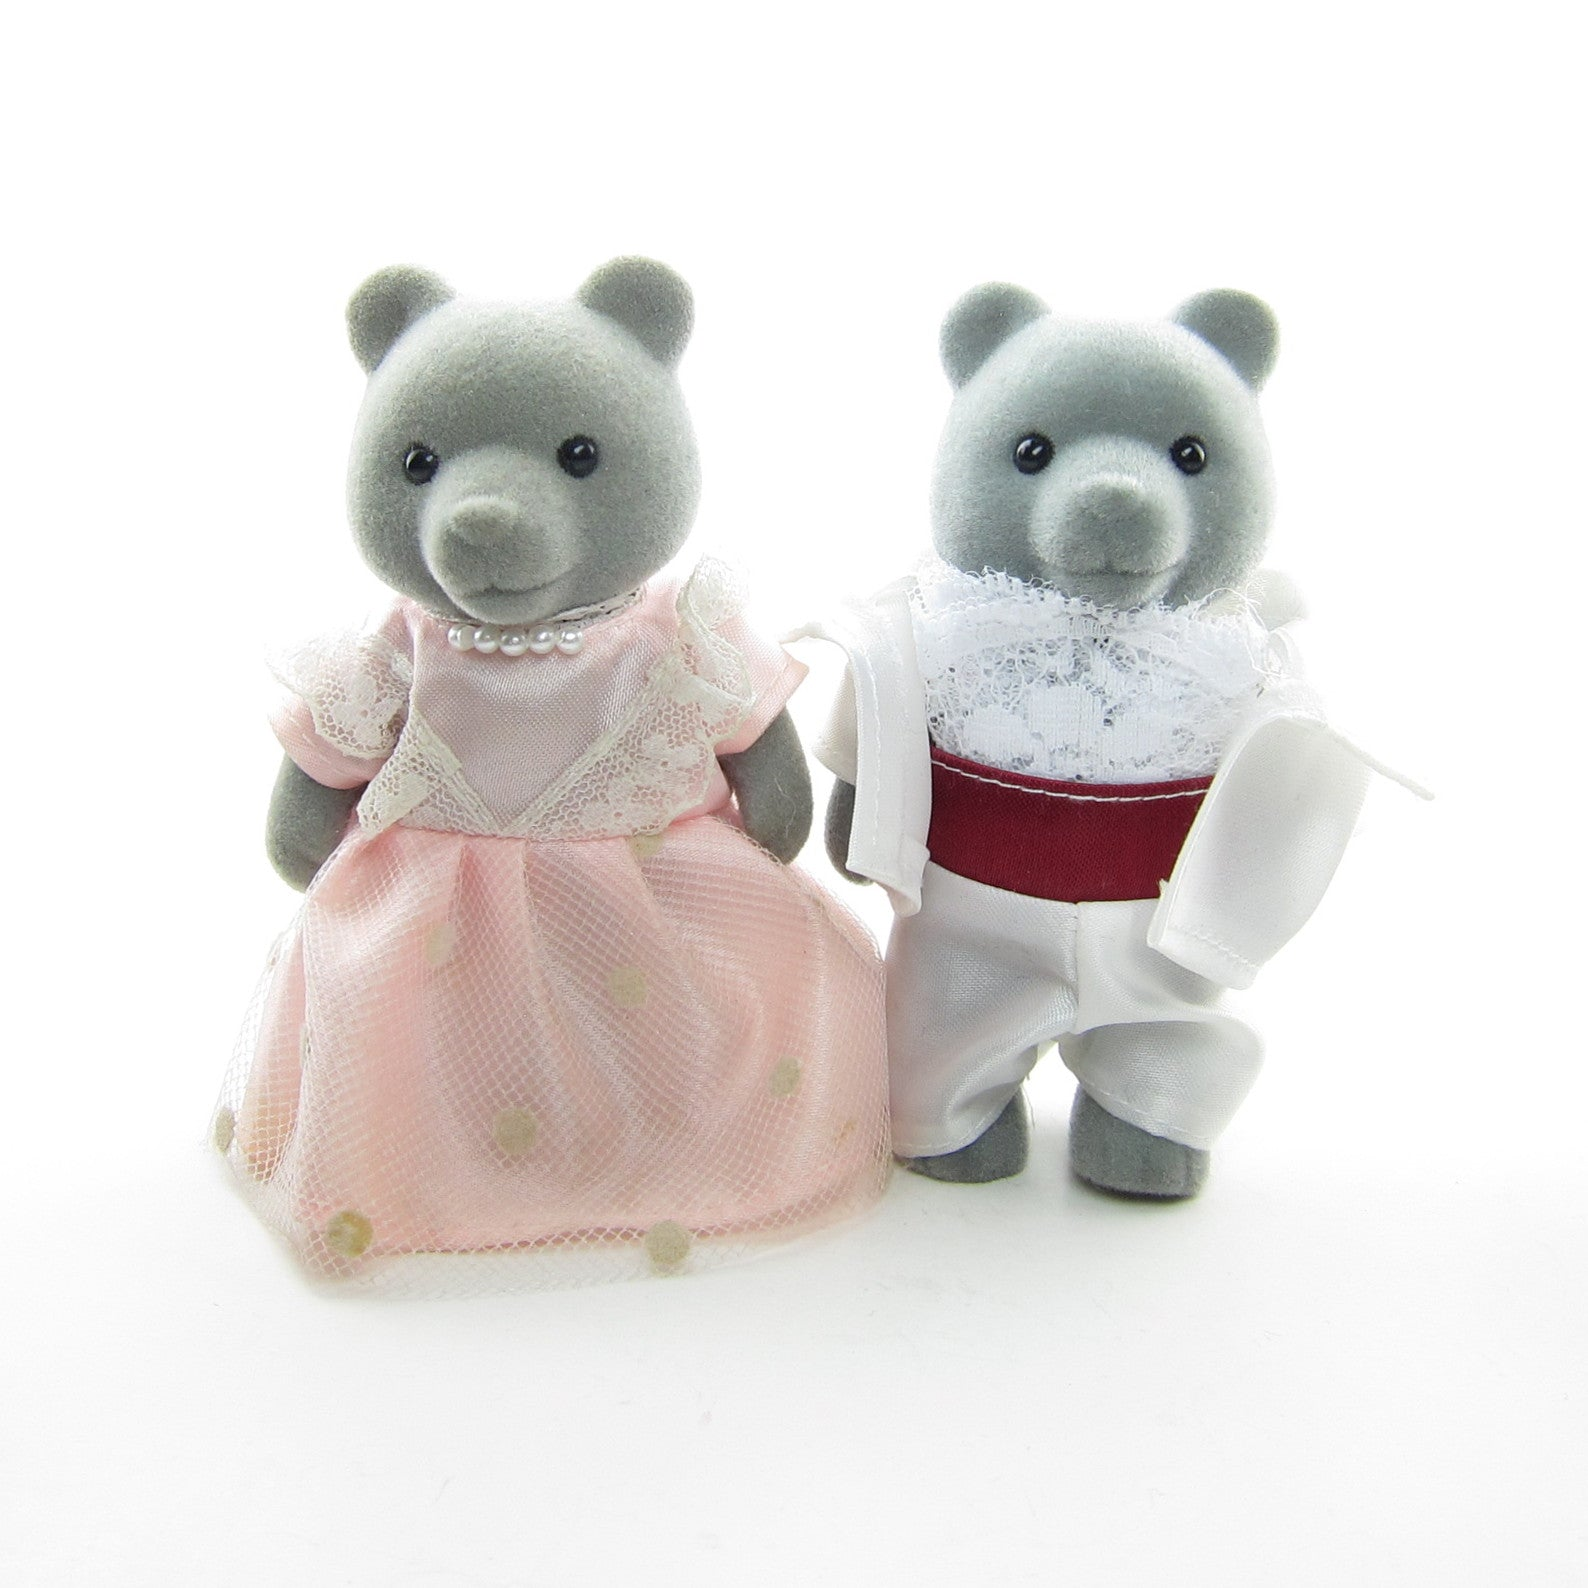 Morris and Kelsey Sweetwater Bride and Groom Sylvanian Families couple